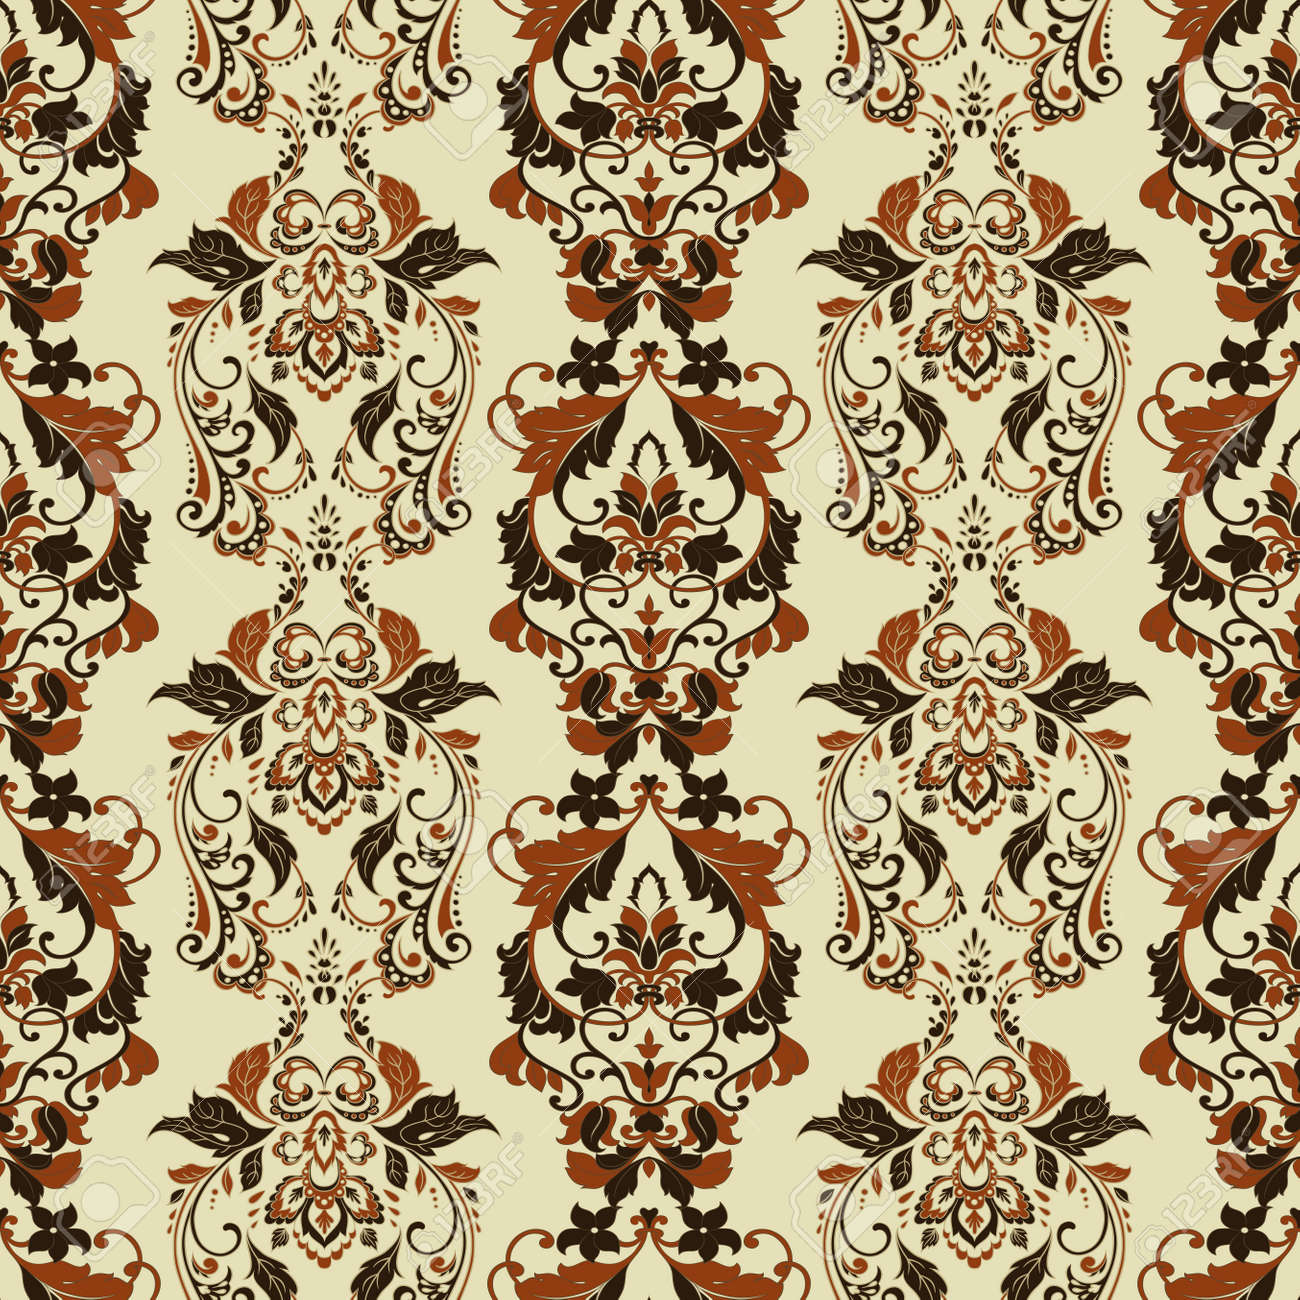 Vintage Floral Wallpaper Seamless Vector Pattern Royalty Free